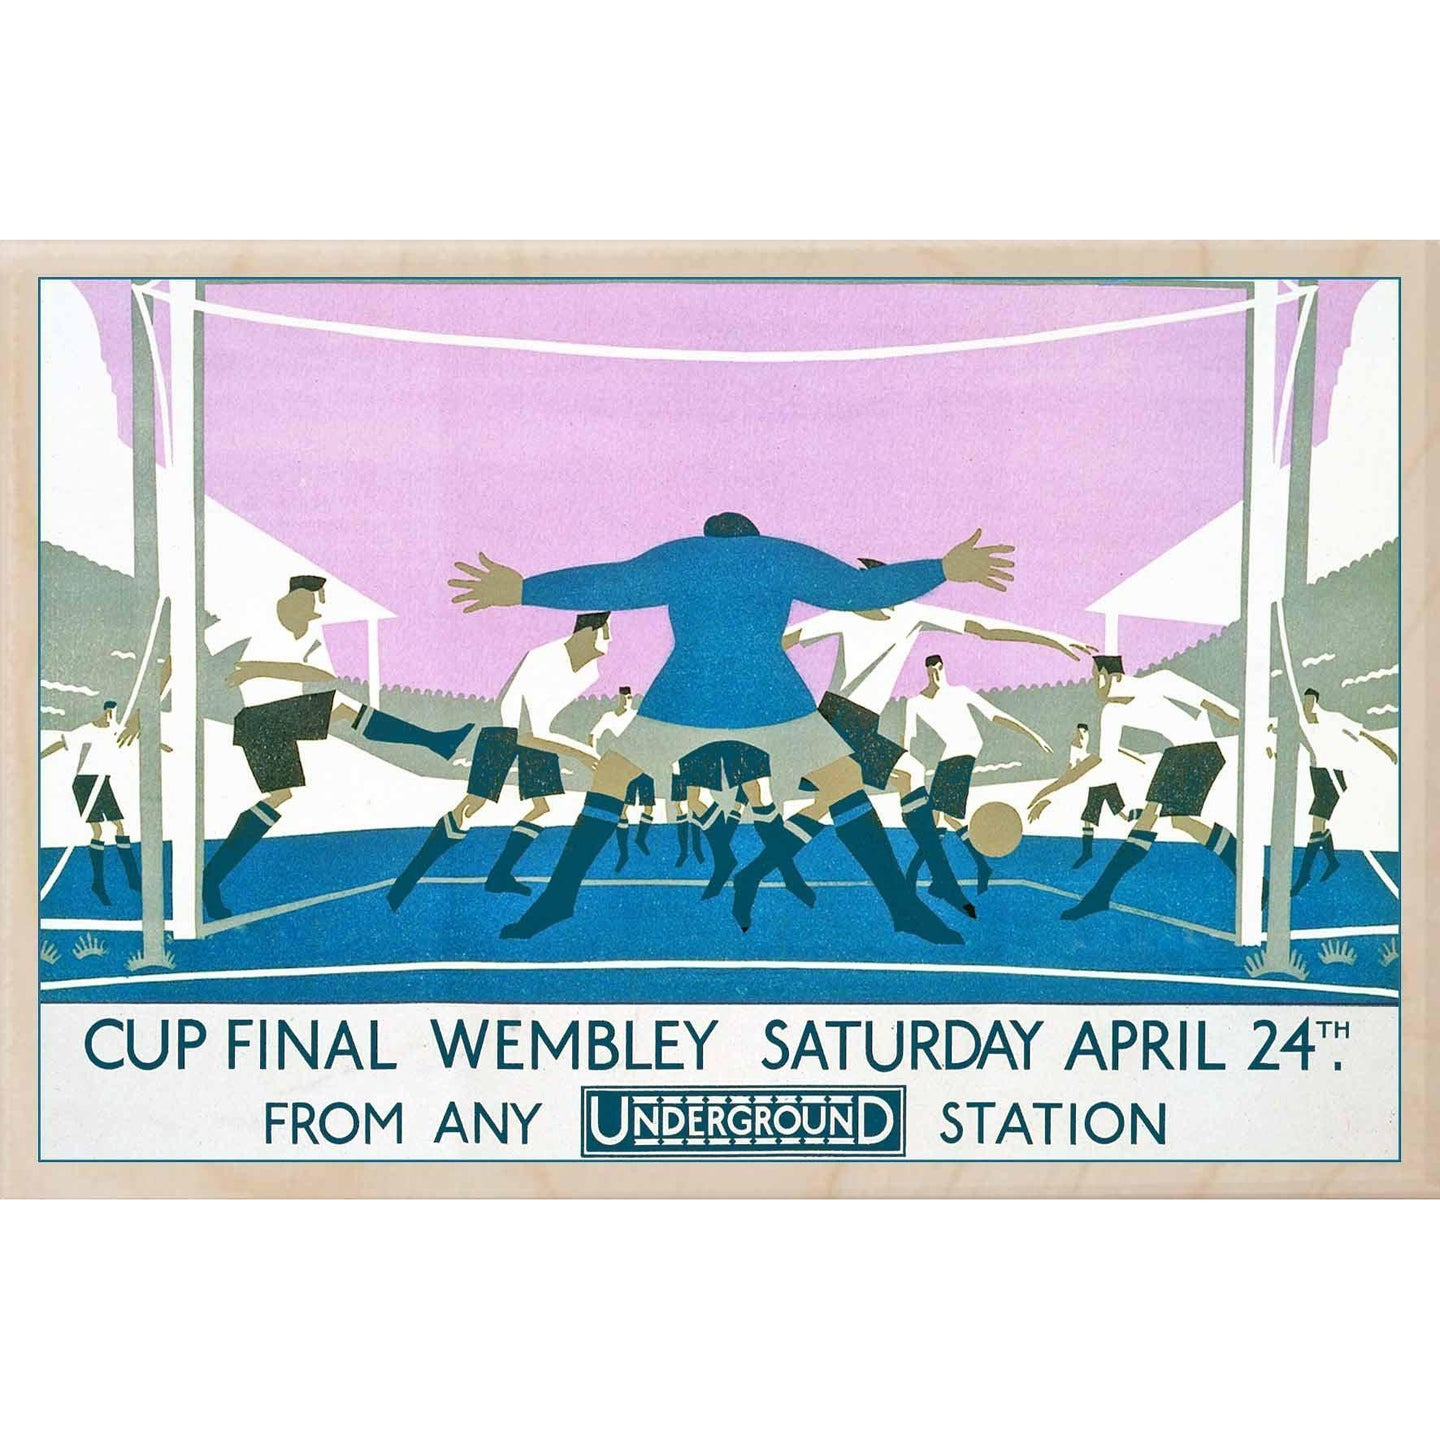 WEMBLEY-[wooden_postcard]-[london_transport_museum]-[original_illustration]THE WOODEN POSTCARD COMPANY